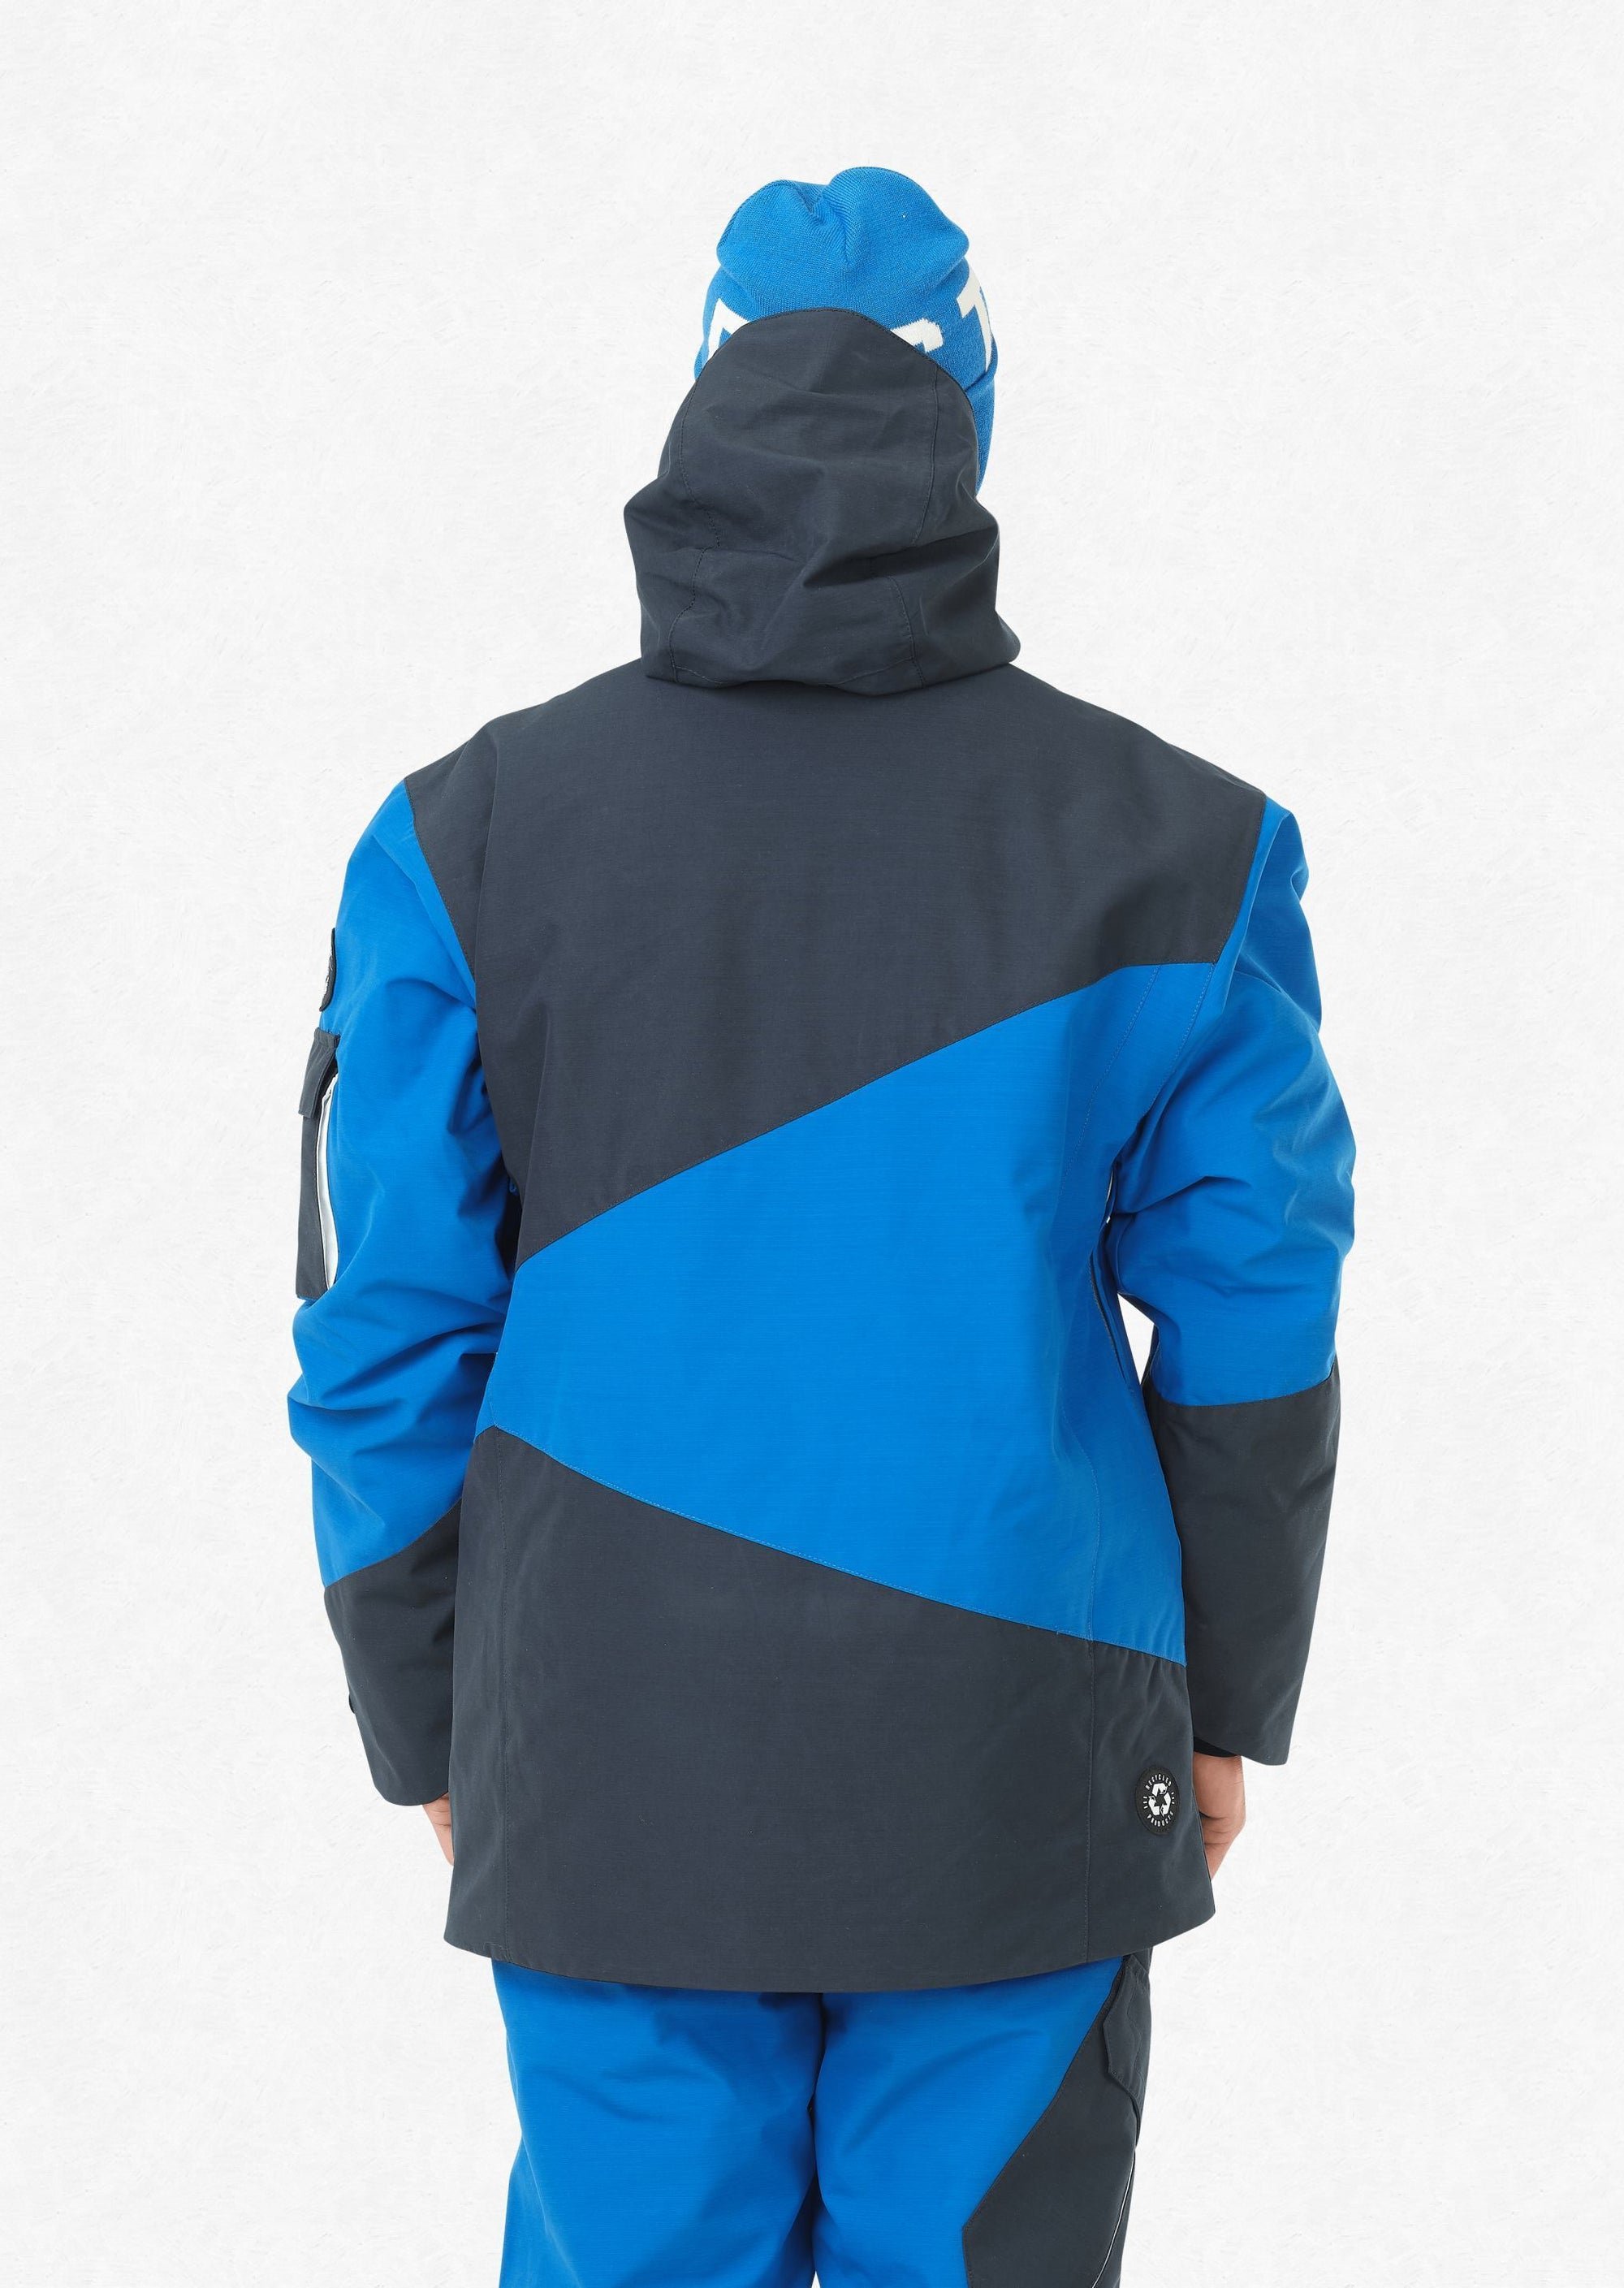 Picture Organic - Men's Styler Jacket - Blue - Recycled Polyester - Weekendbee - sustainable sportswear